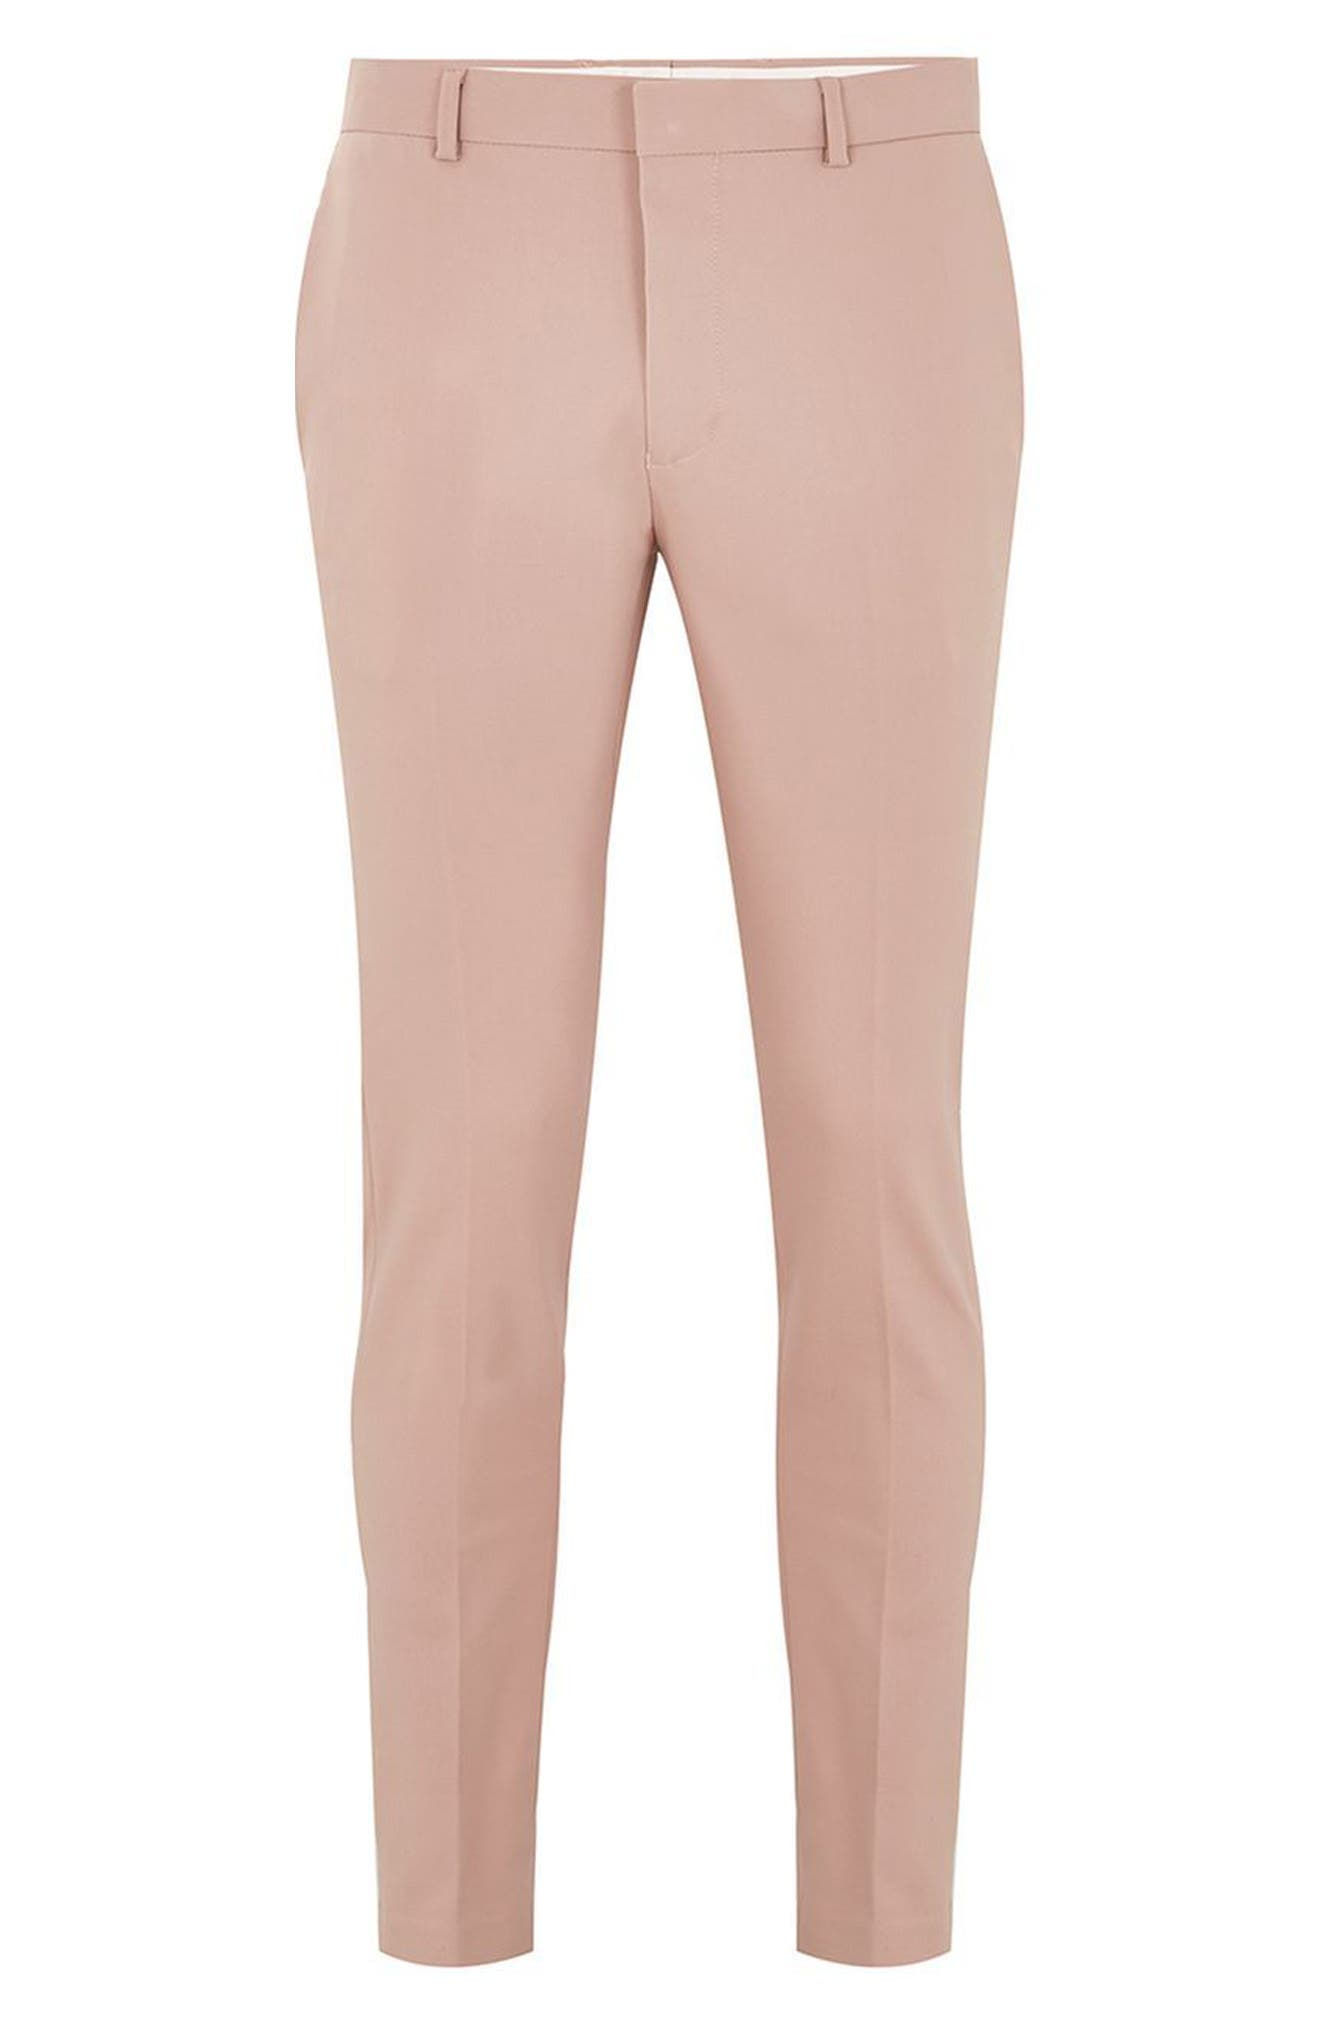 Skinny Fit Suit Trousers,                             Alternate thumbnail 4, color,                             Pink